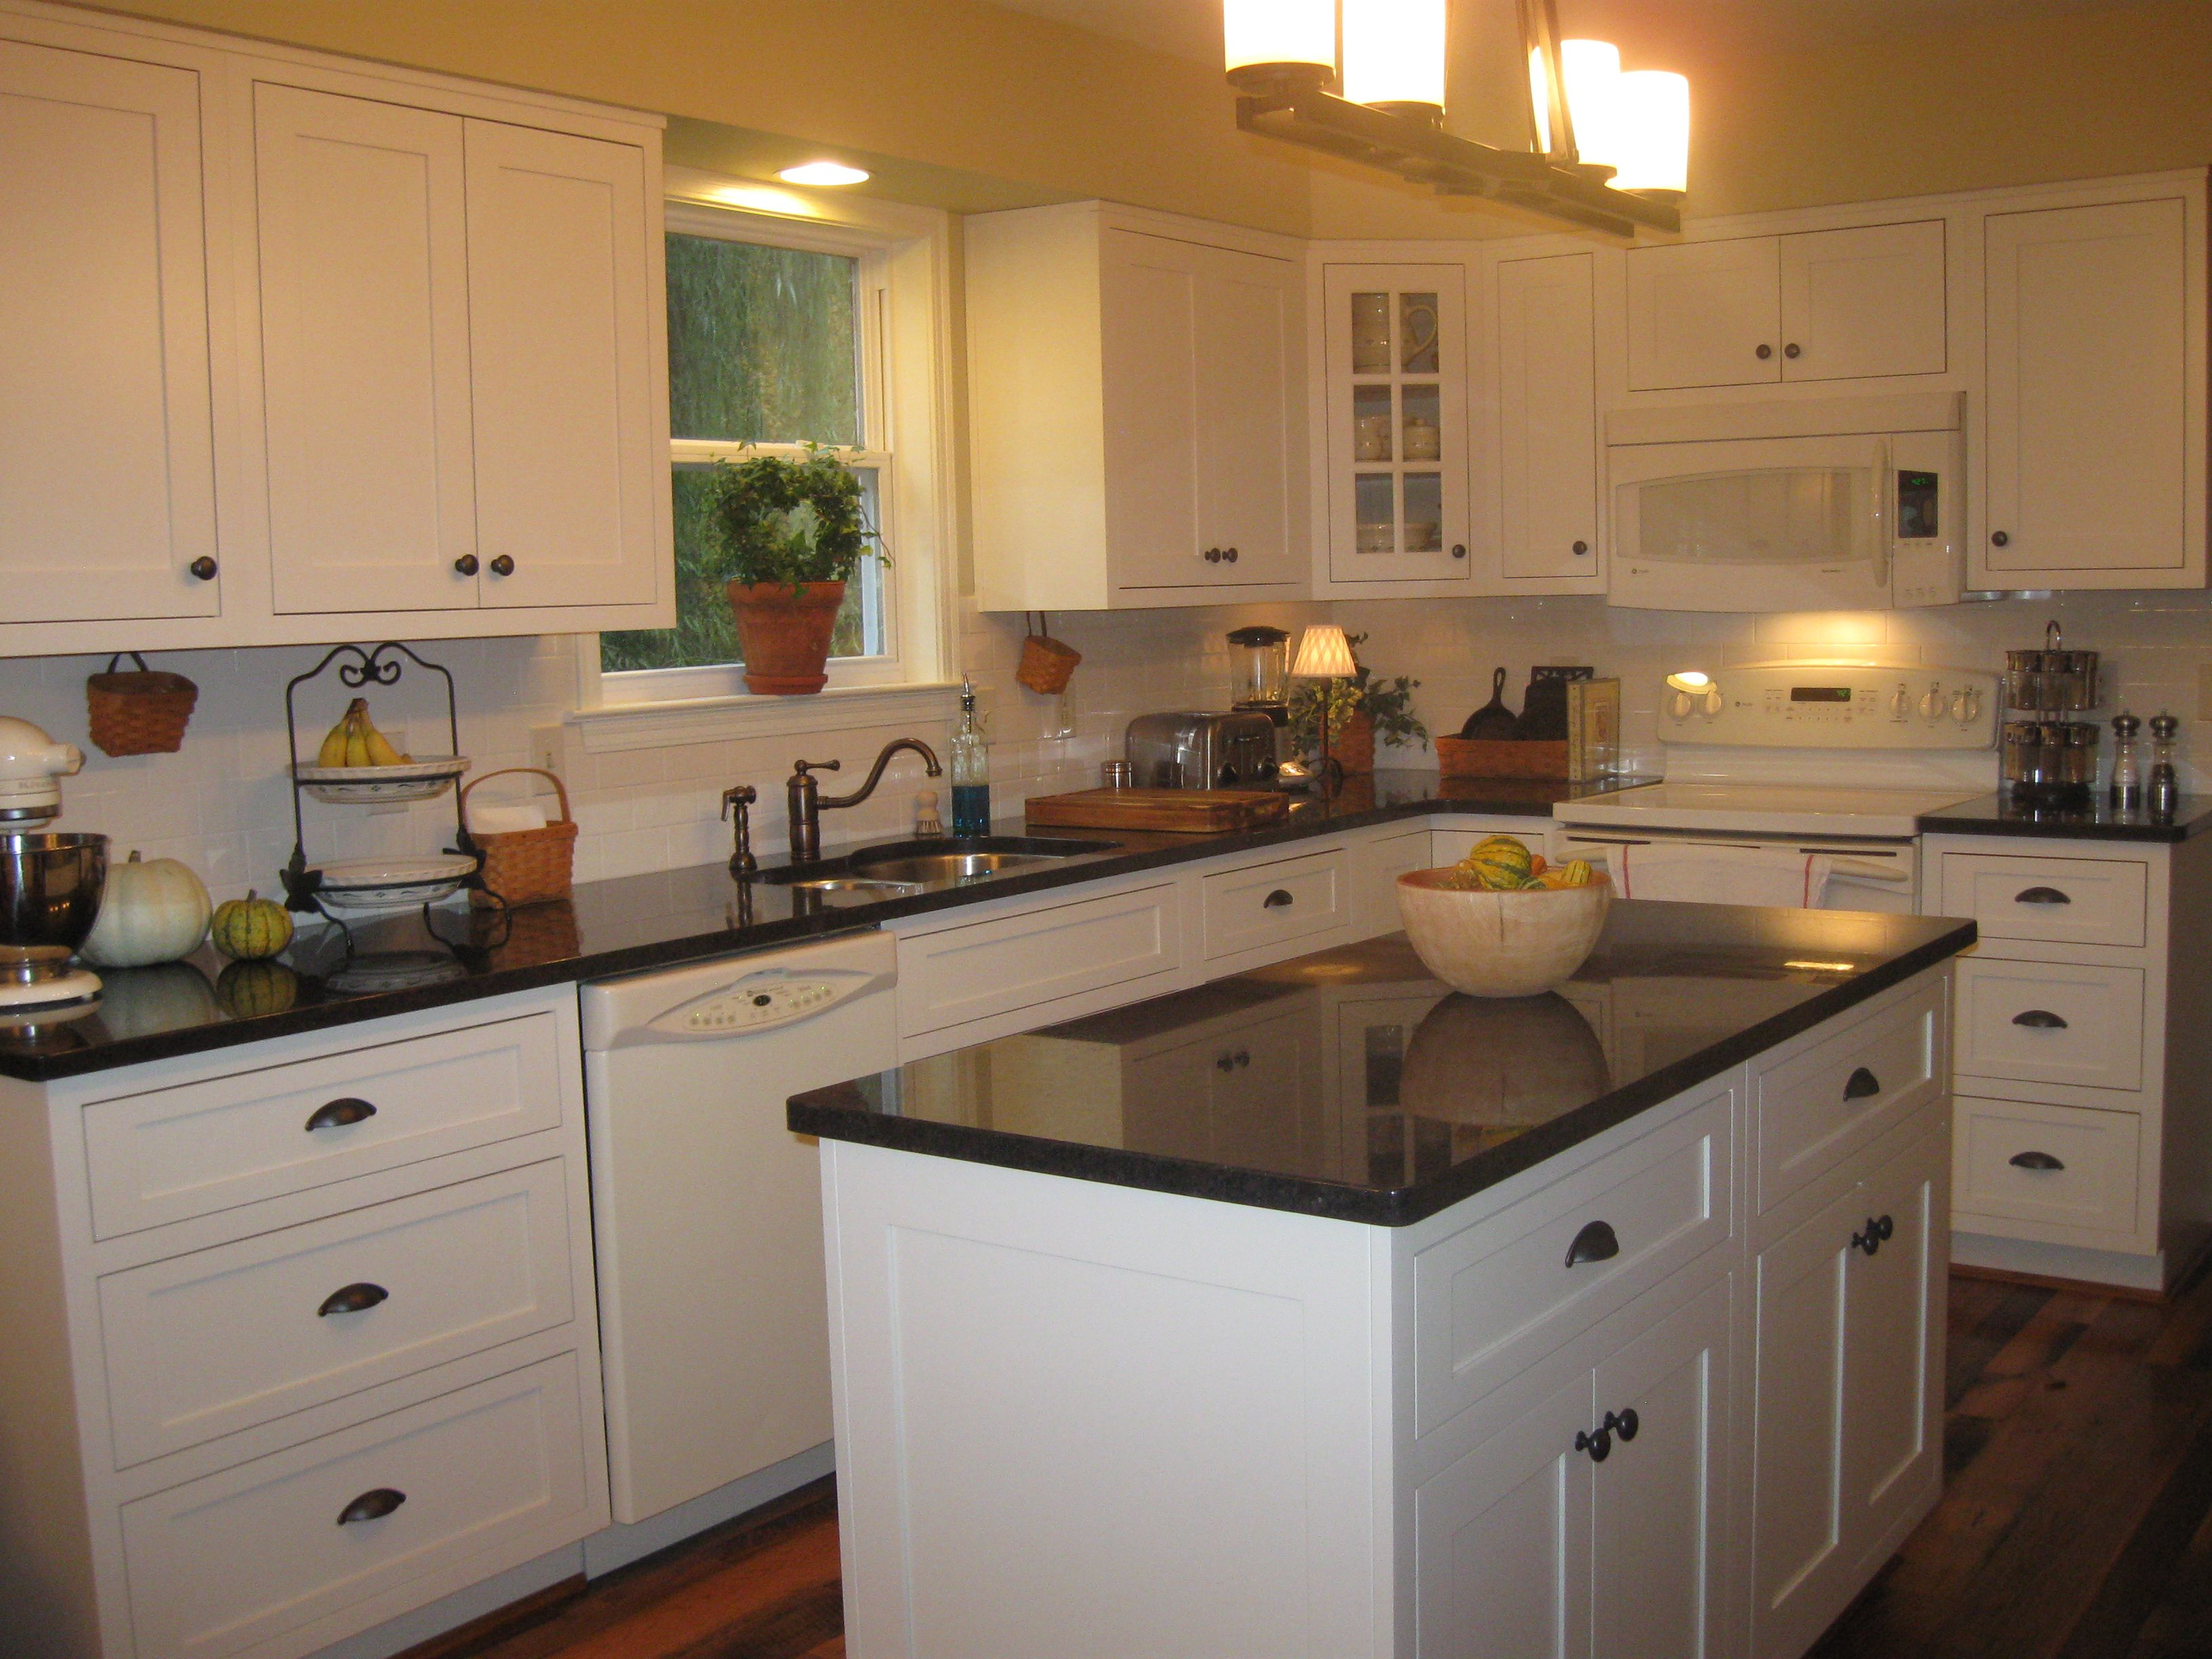 My kitchen Shiloh cabinets with inset doors in soft white coffee